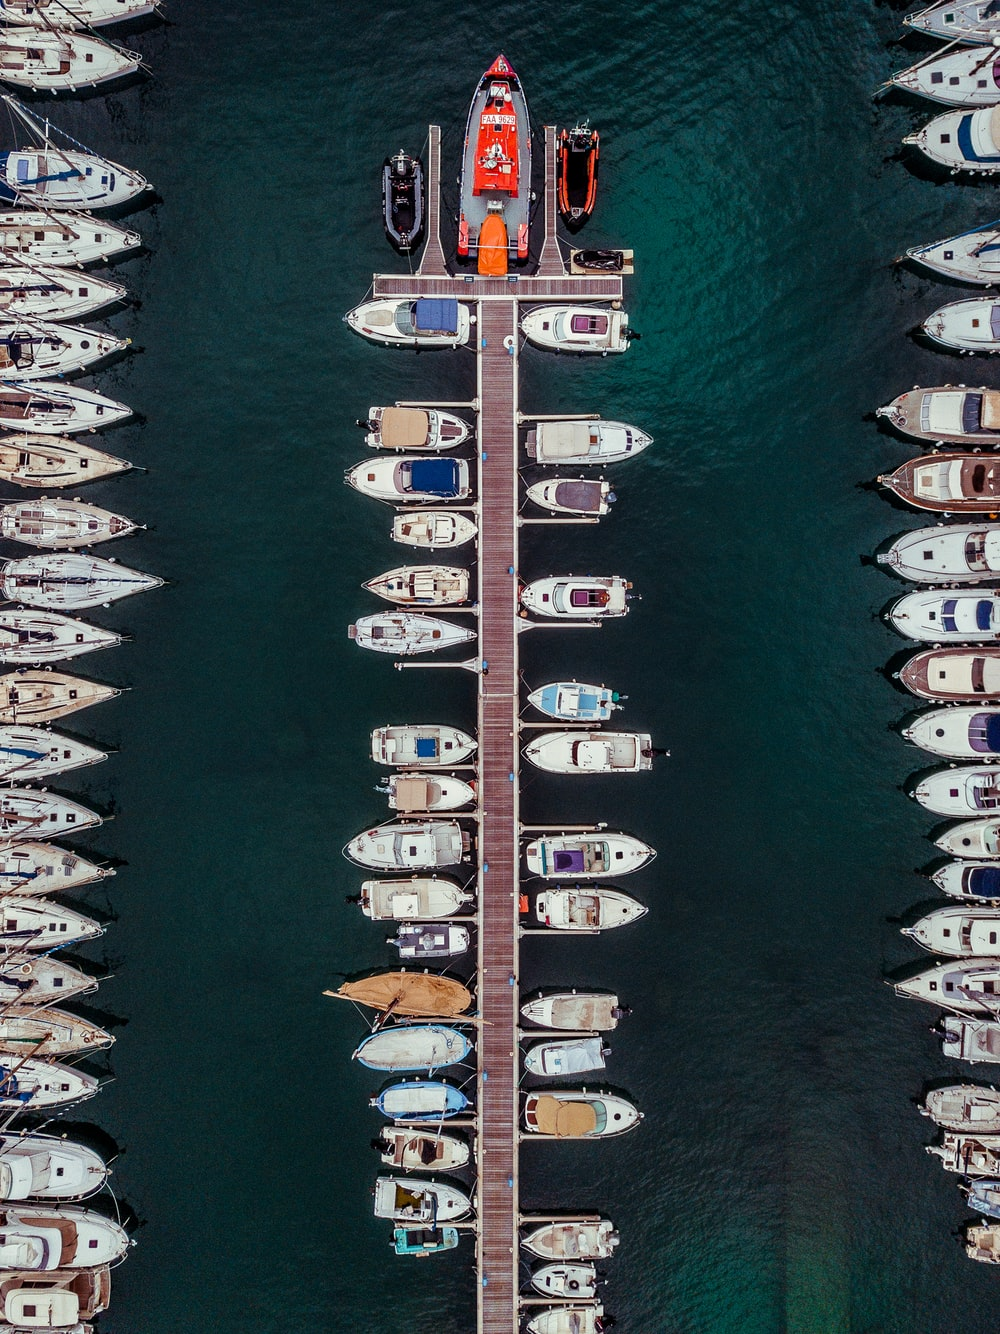 parked boats on water